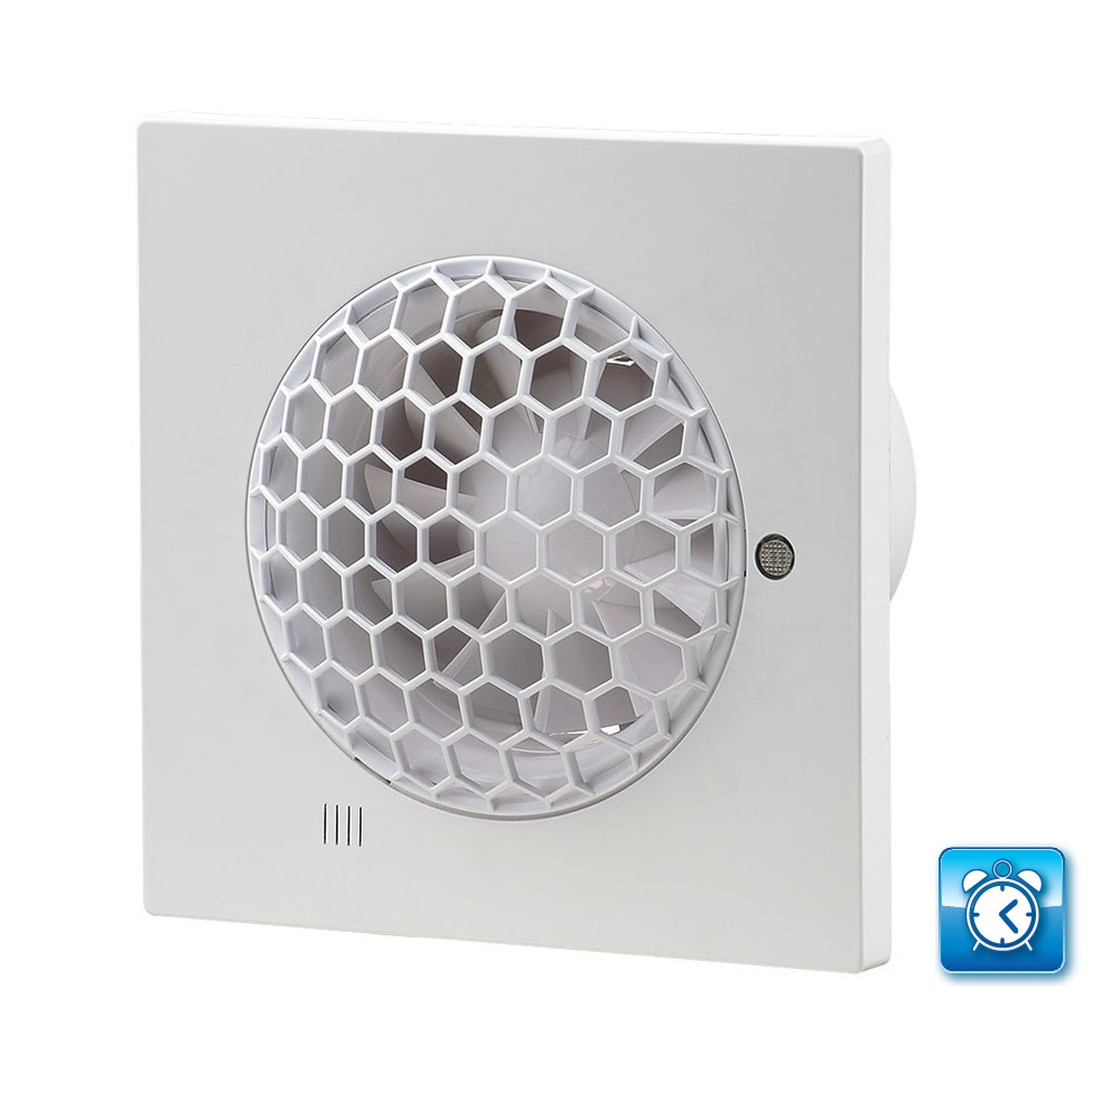 Küchen Wasserarmaturen Ventilator Badlüfter Quiet S Ø 100 Mm Timer Sellselect